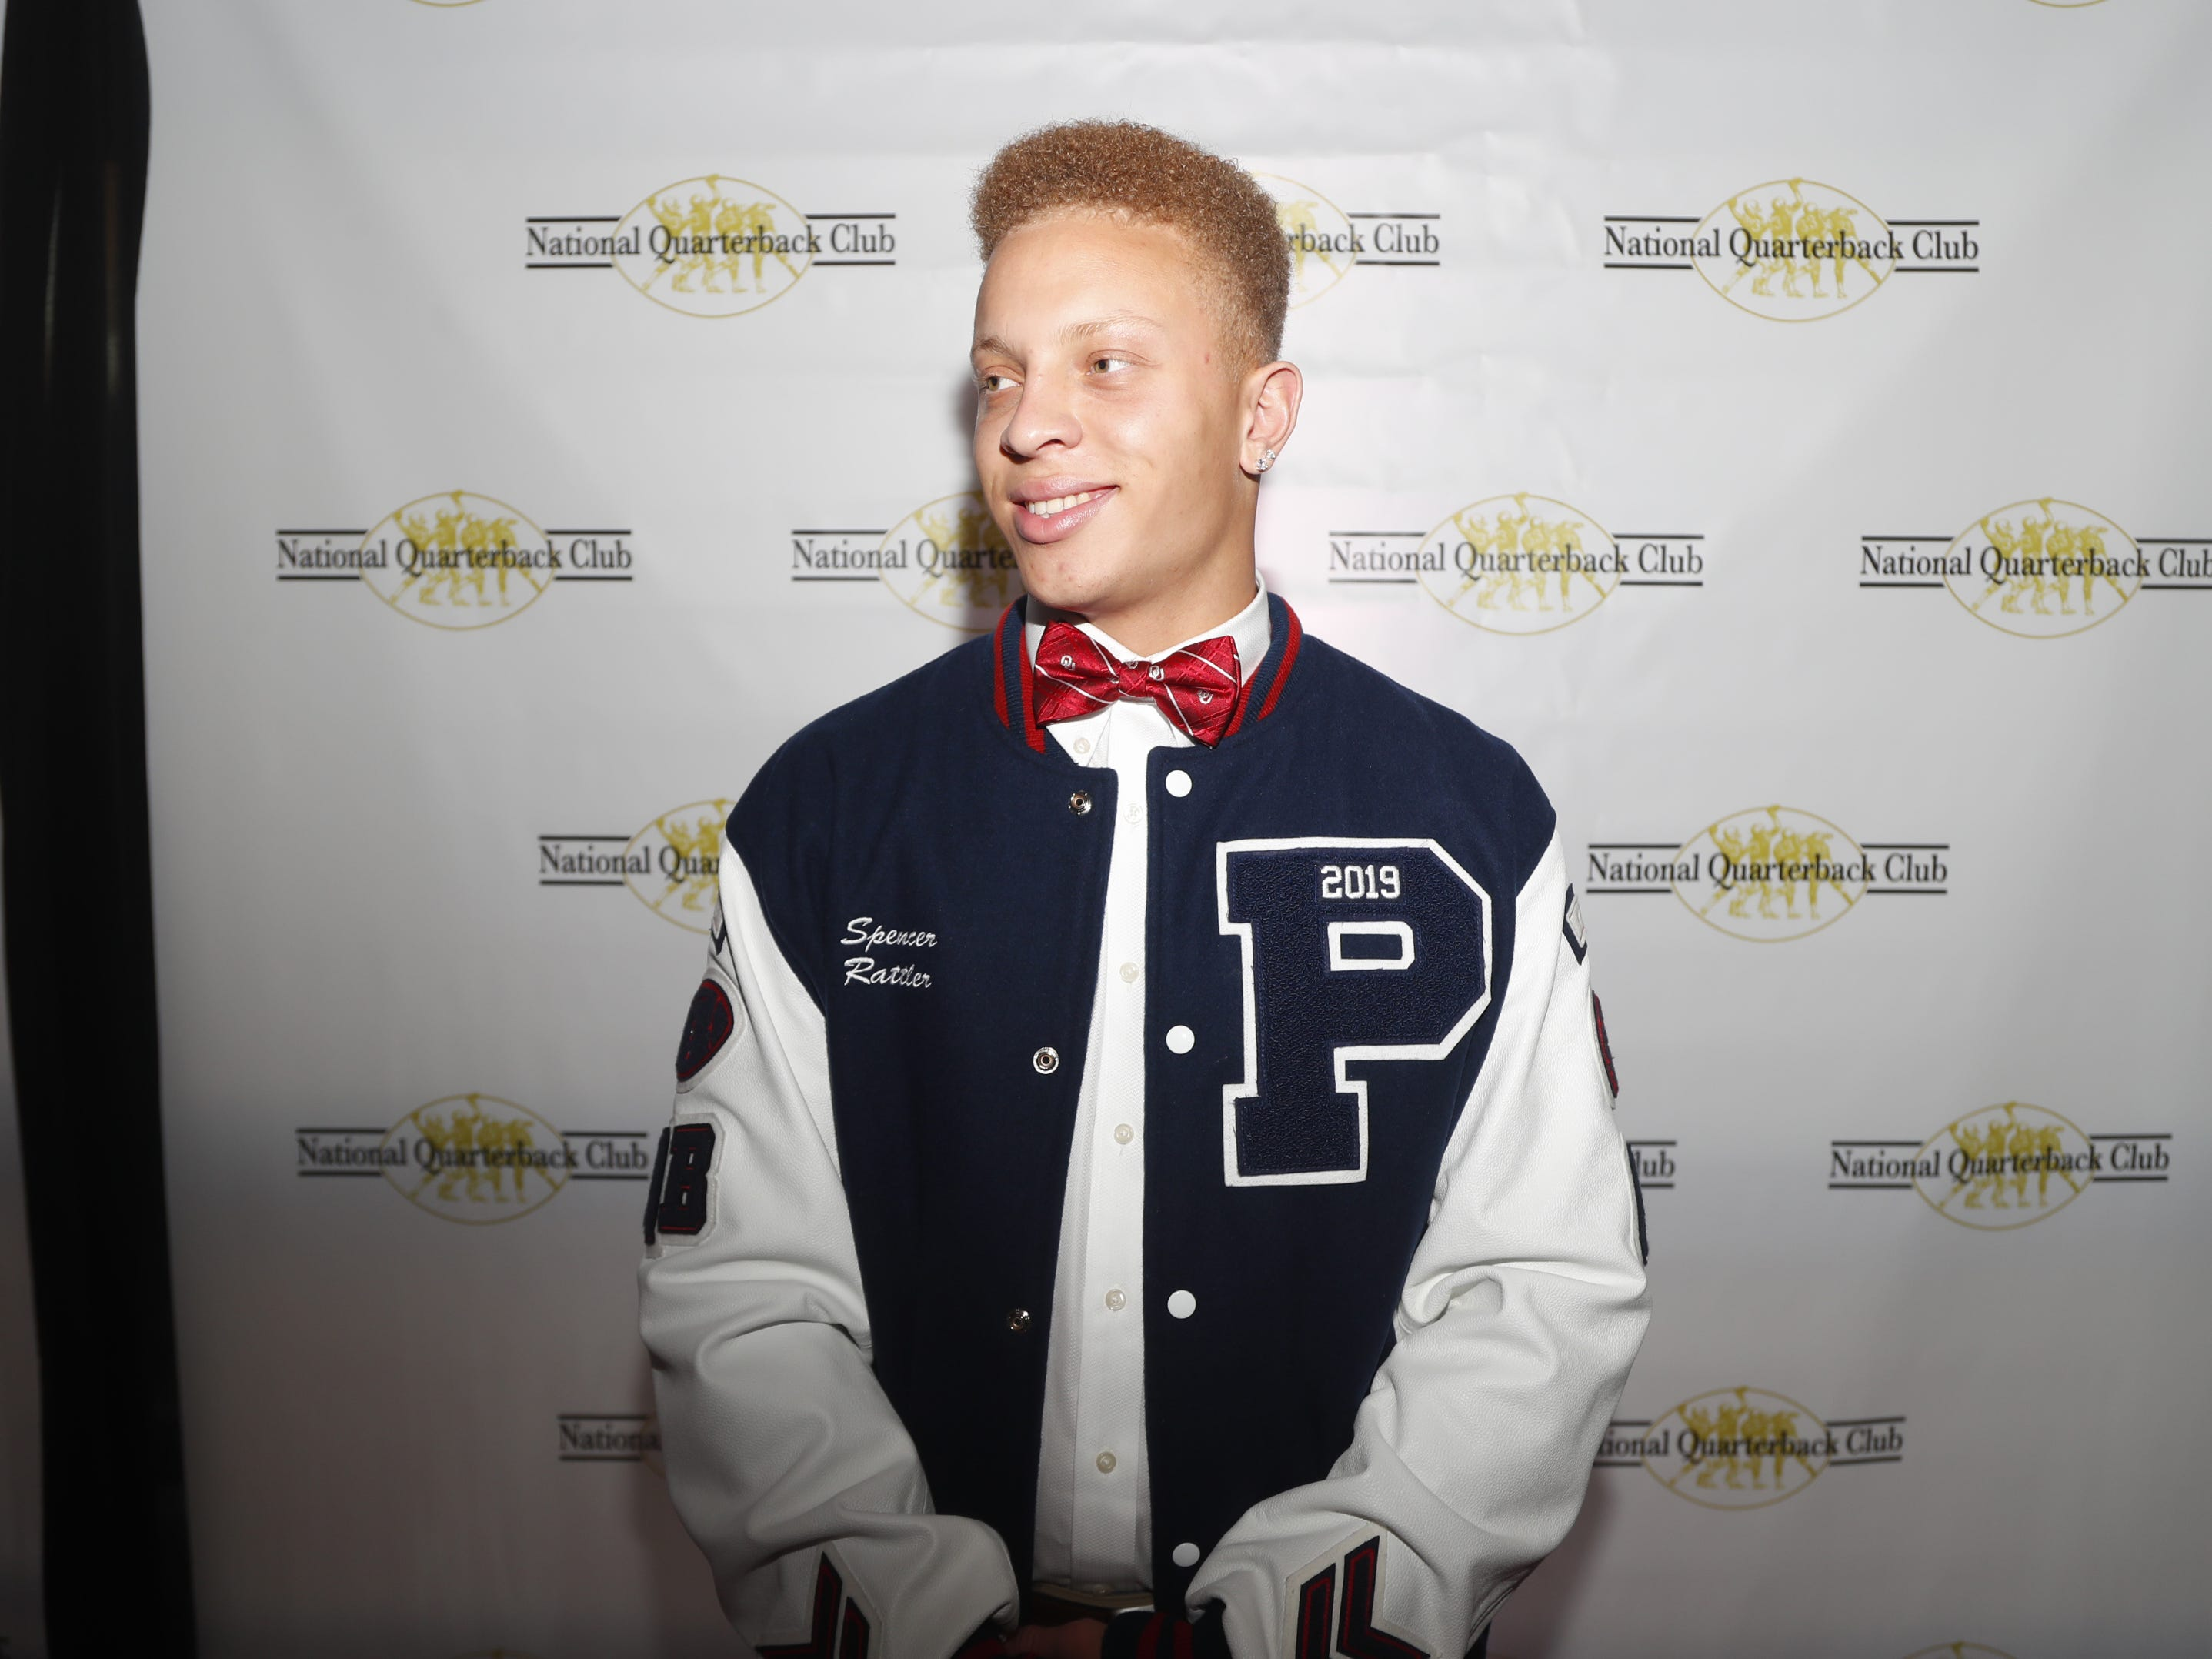 Pinnacle quarterback Spencer Rattler poses for pictures before the National Quarterback Club Awards Dinner & Hall of Fame Induction Ceremony The Scottsdale Resort at McCormick Ranch in Scottsdale, Ariz. on January 19, 2019.